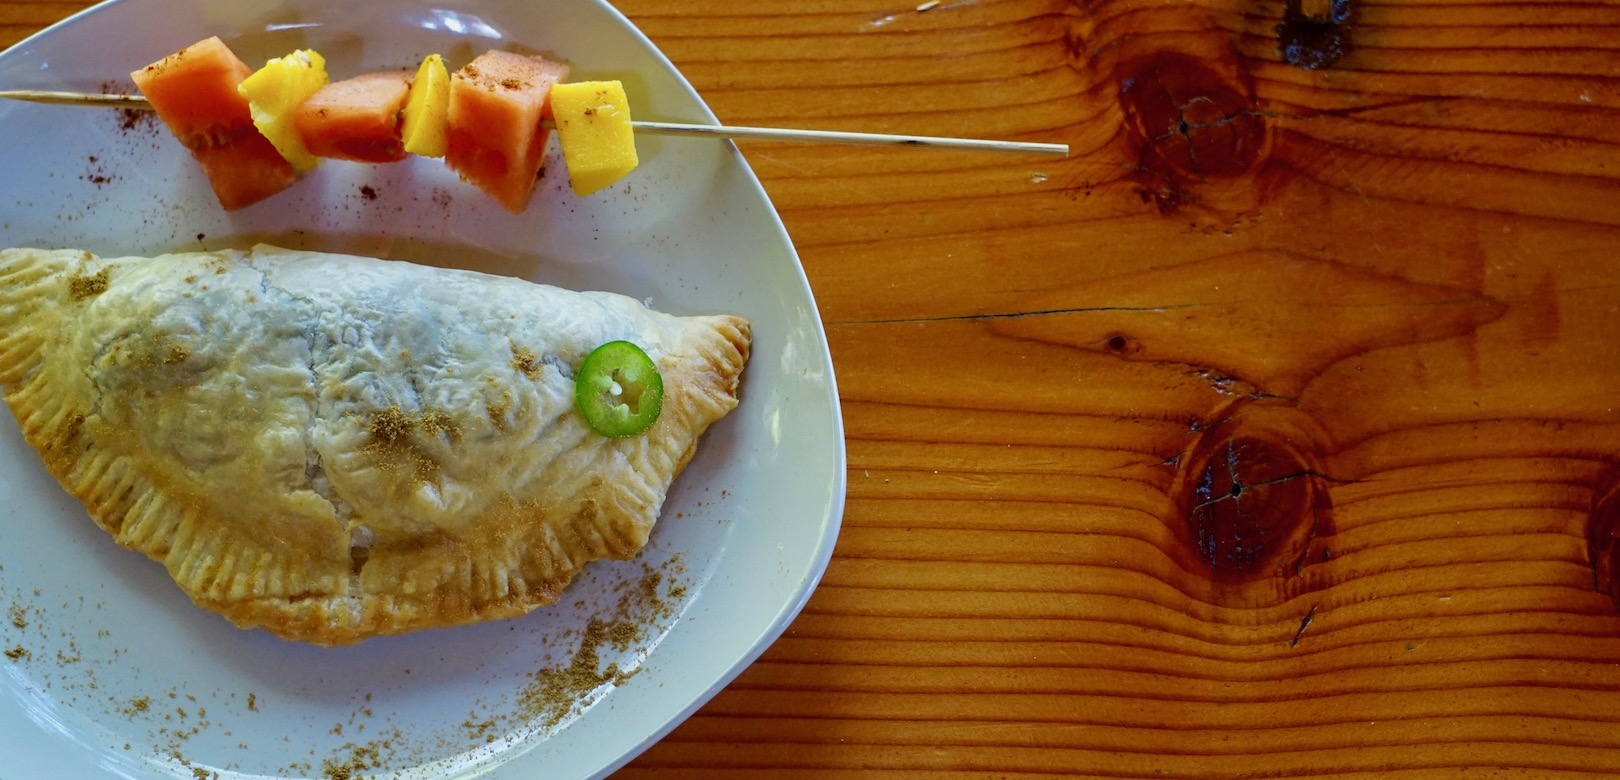 An empanada and fruit skewer plated for lunch at Cabana Desolation Eco Resort